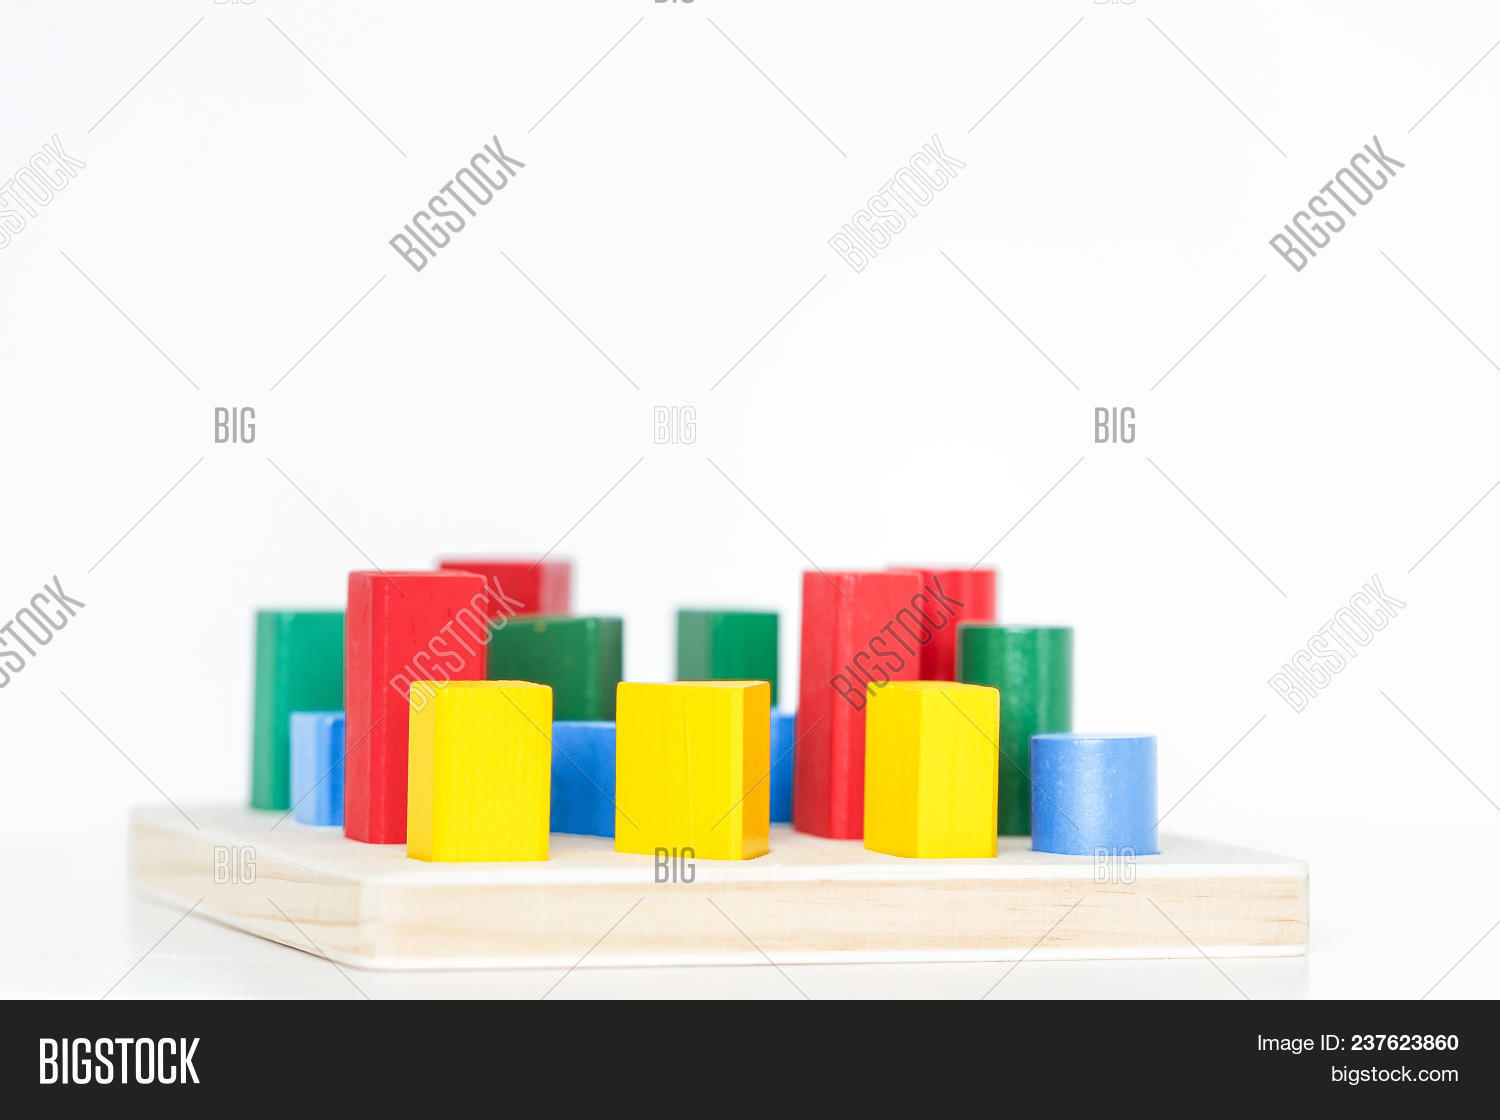 activity,bject,block,bricks,build,childhood,classroom,color,colorful,construction,create,creative,cube,cute,development,didactic,education,game,isolated,kindergarten,learn,learning,leisure,play,playground,preschool,school,skill,square,stack,structure,table,toddler,tower,toy,wood